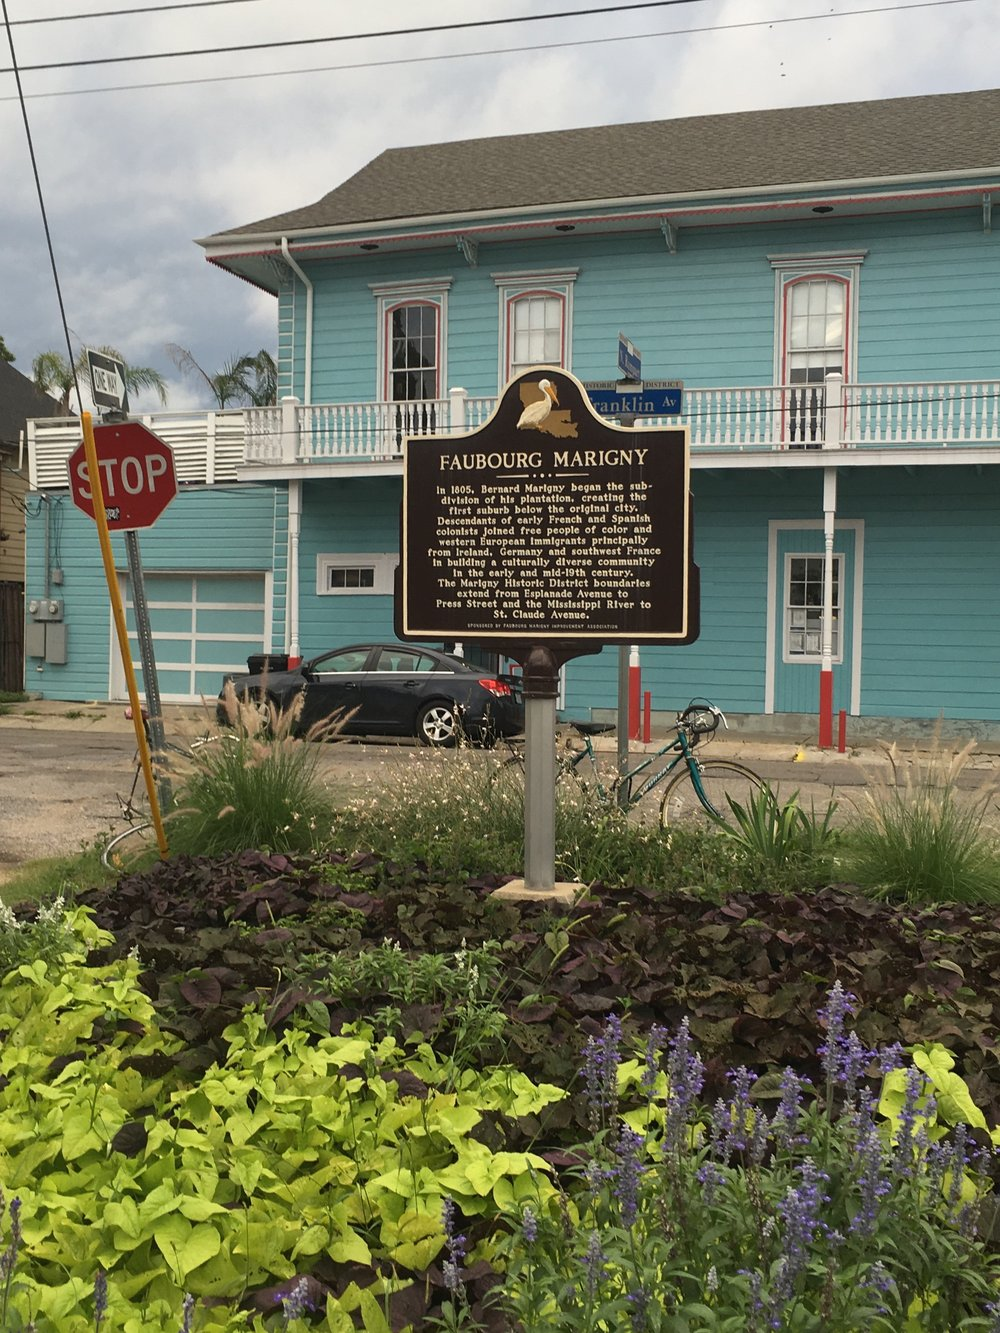 Benard de Marginy laid out the Marginy from land that had been his family's plantation just outside the old city limits of New Orleans. Today, we would consider this former plantation as squarely in the city.